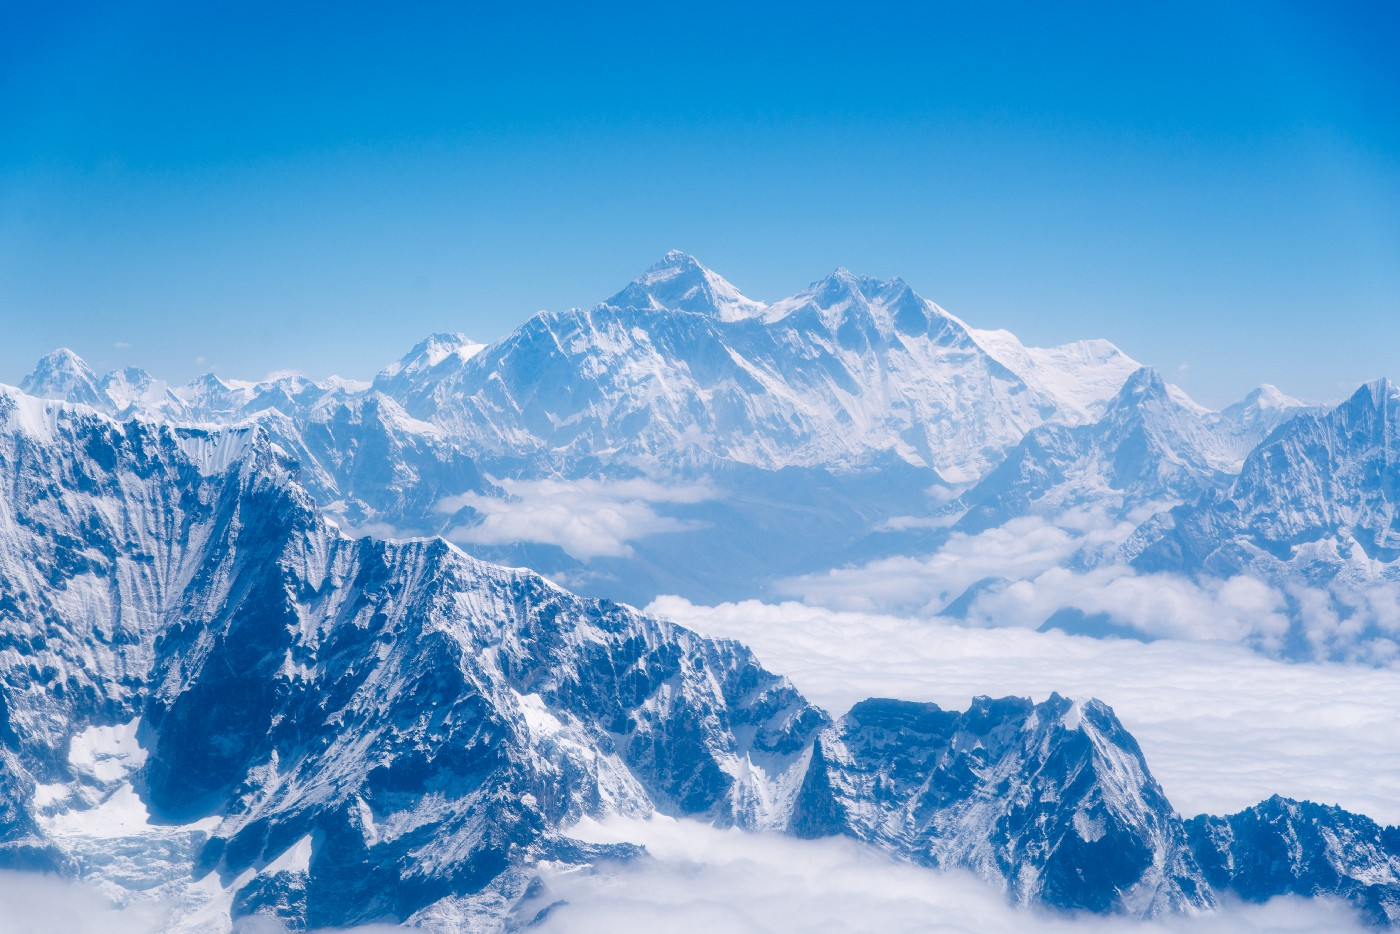 An image of Mount Everest, the tallest mountain on Earth. It's a big mountain covered in snow.